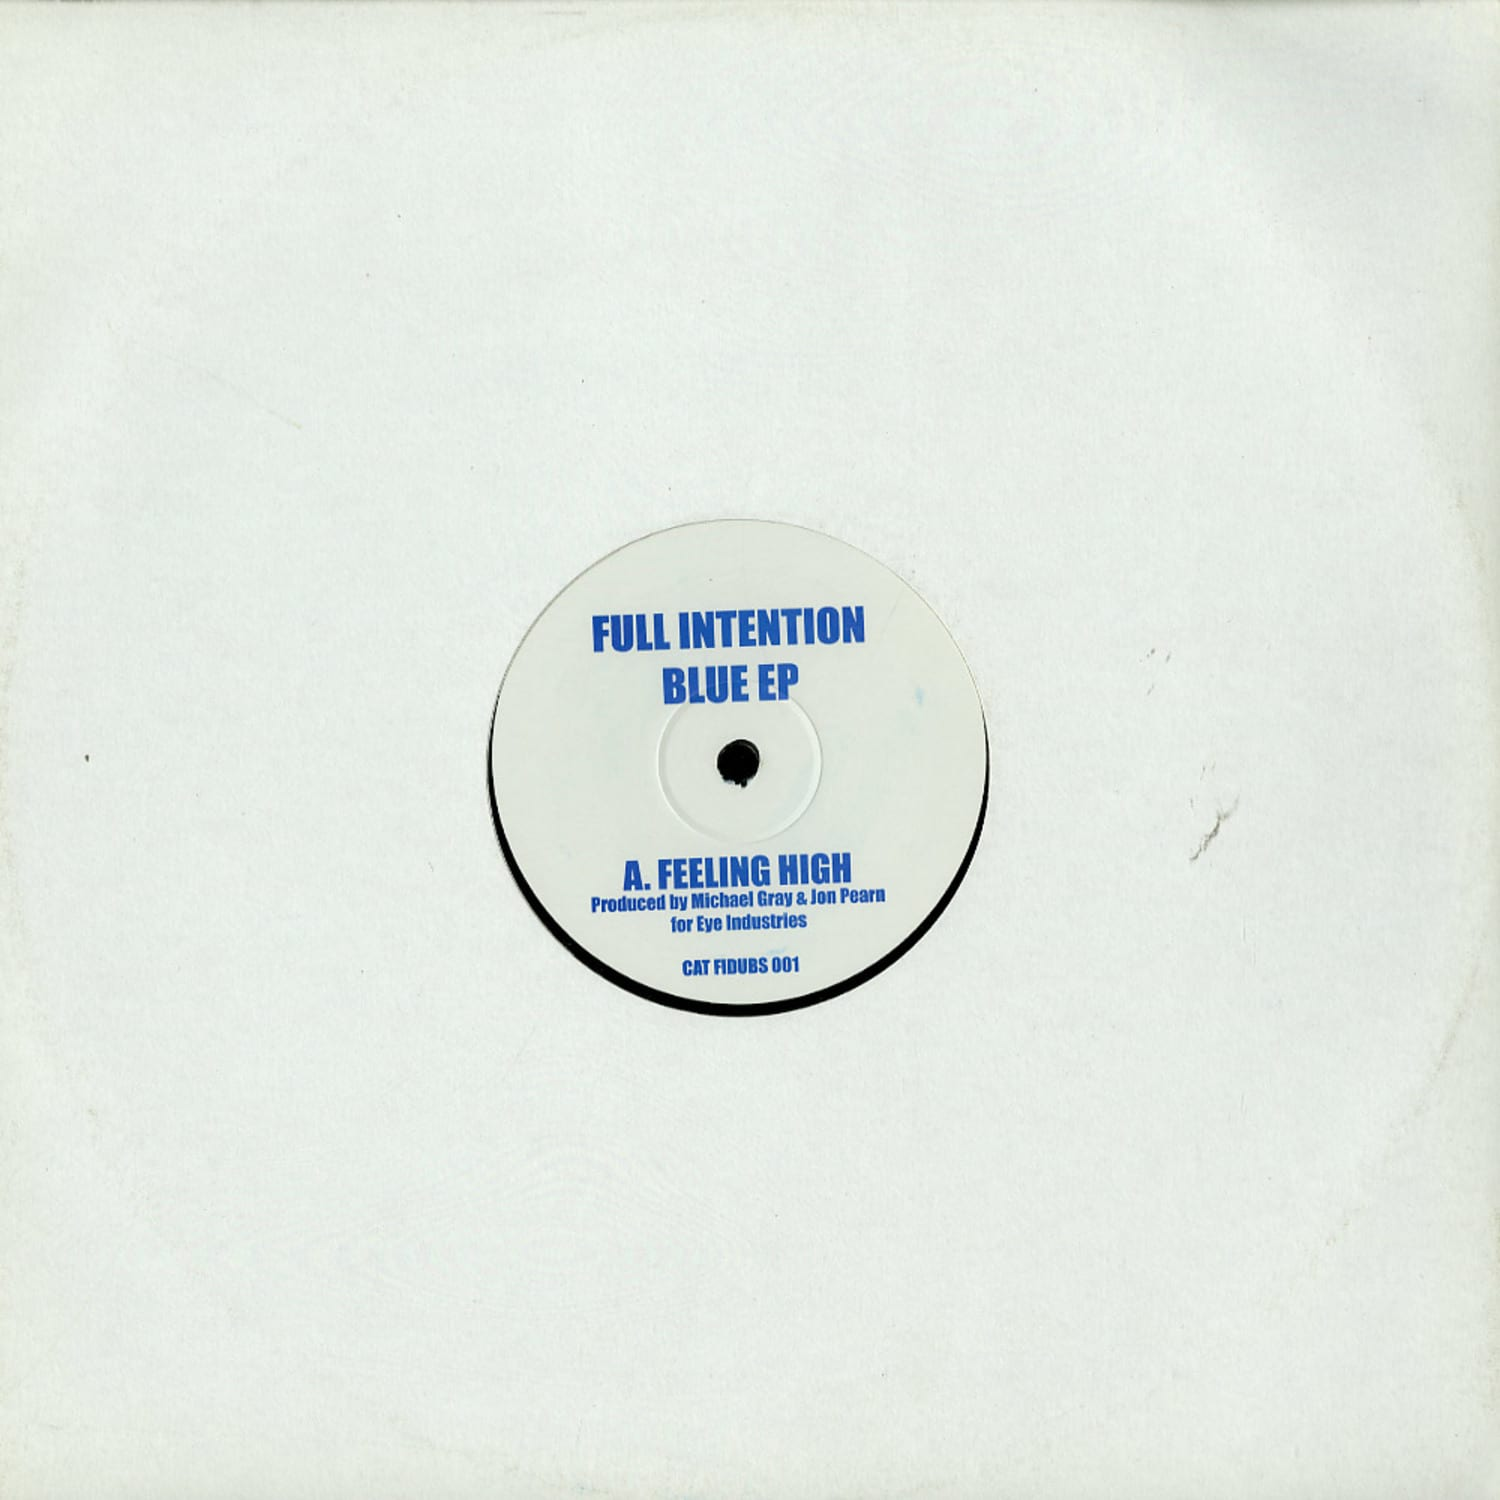 Full Intention - BLUE EP